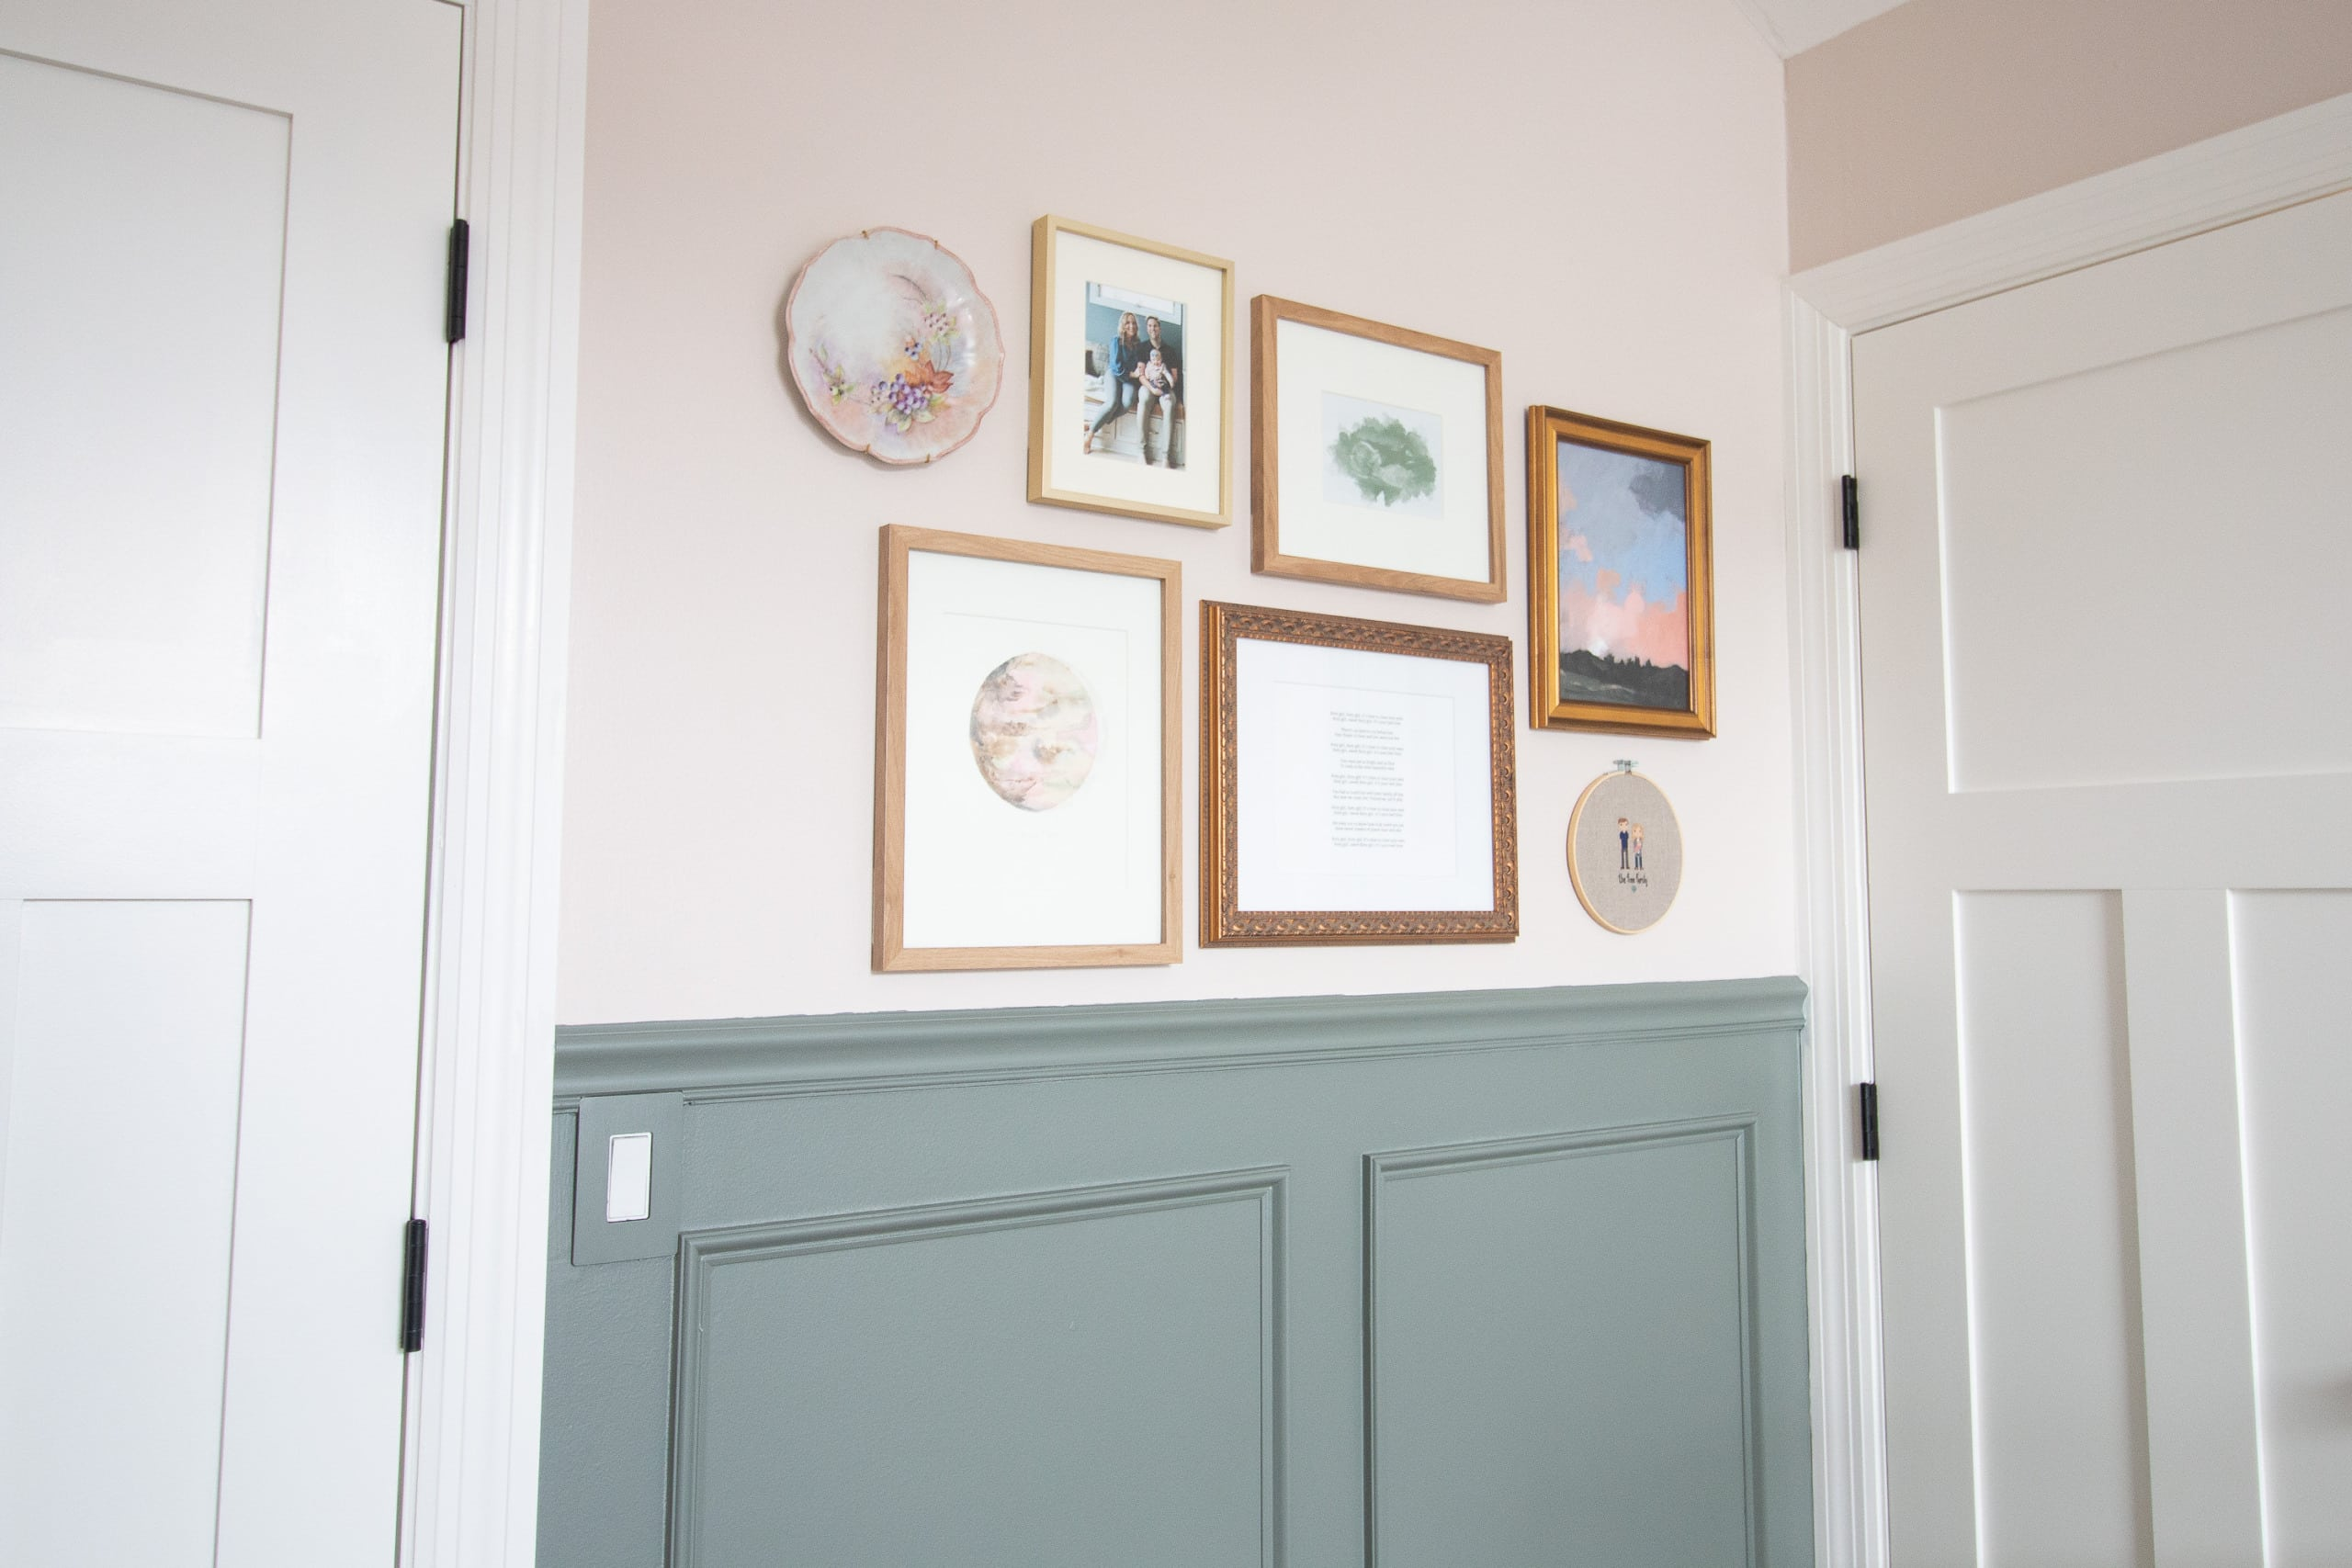 Staring at the nursery gallery wall